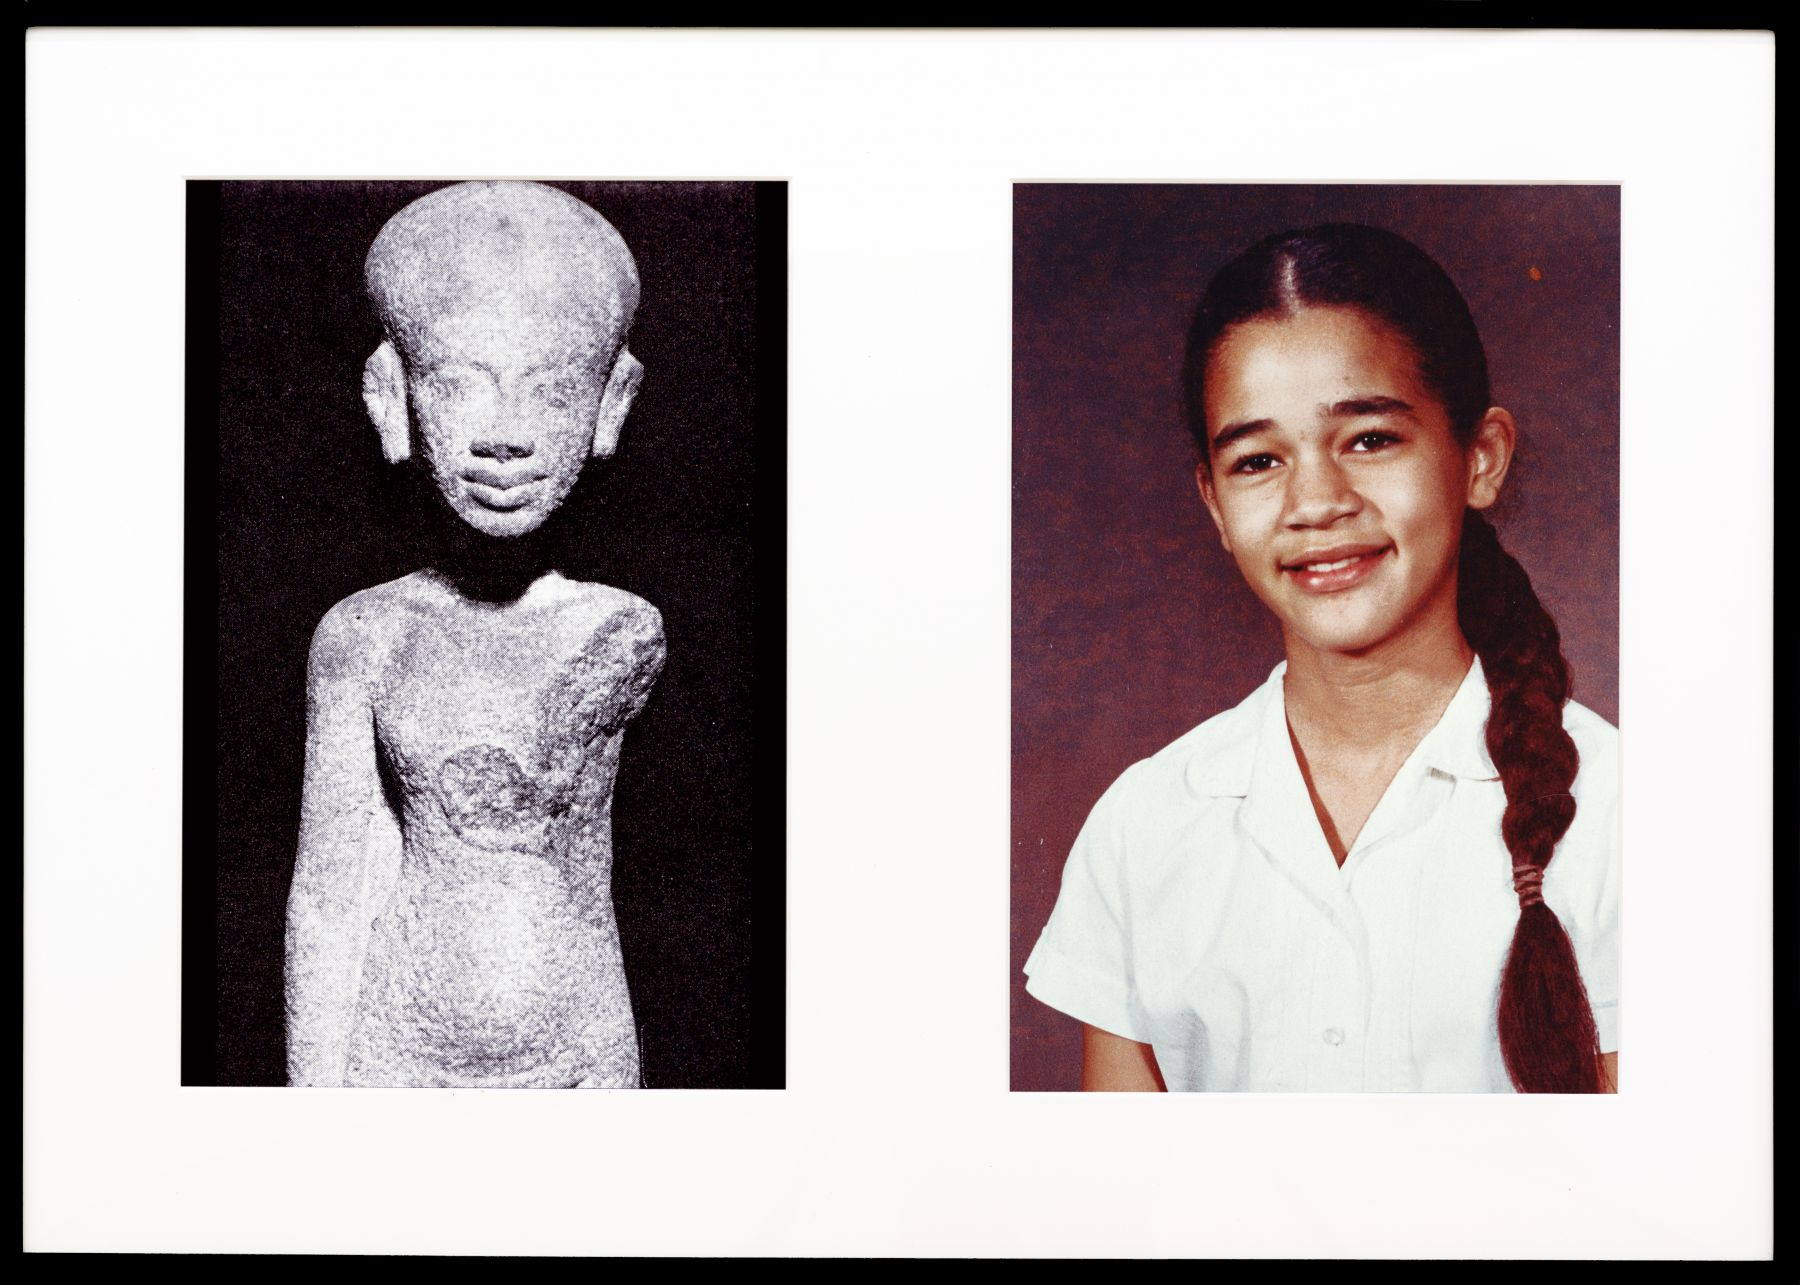 Lorraine O'Grady, Miscegenated Family Album (Young Princesses), L: Nefertiti's daughter, Ankhesenpaaten; R: Devonia's daughter, Candace, 1980/1994